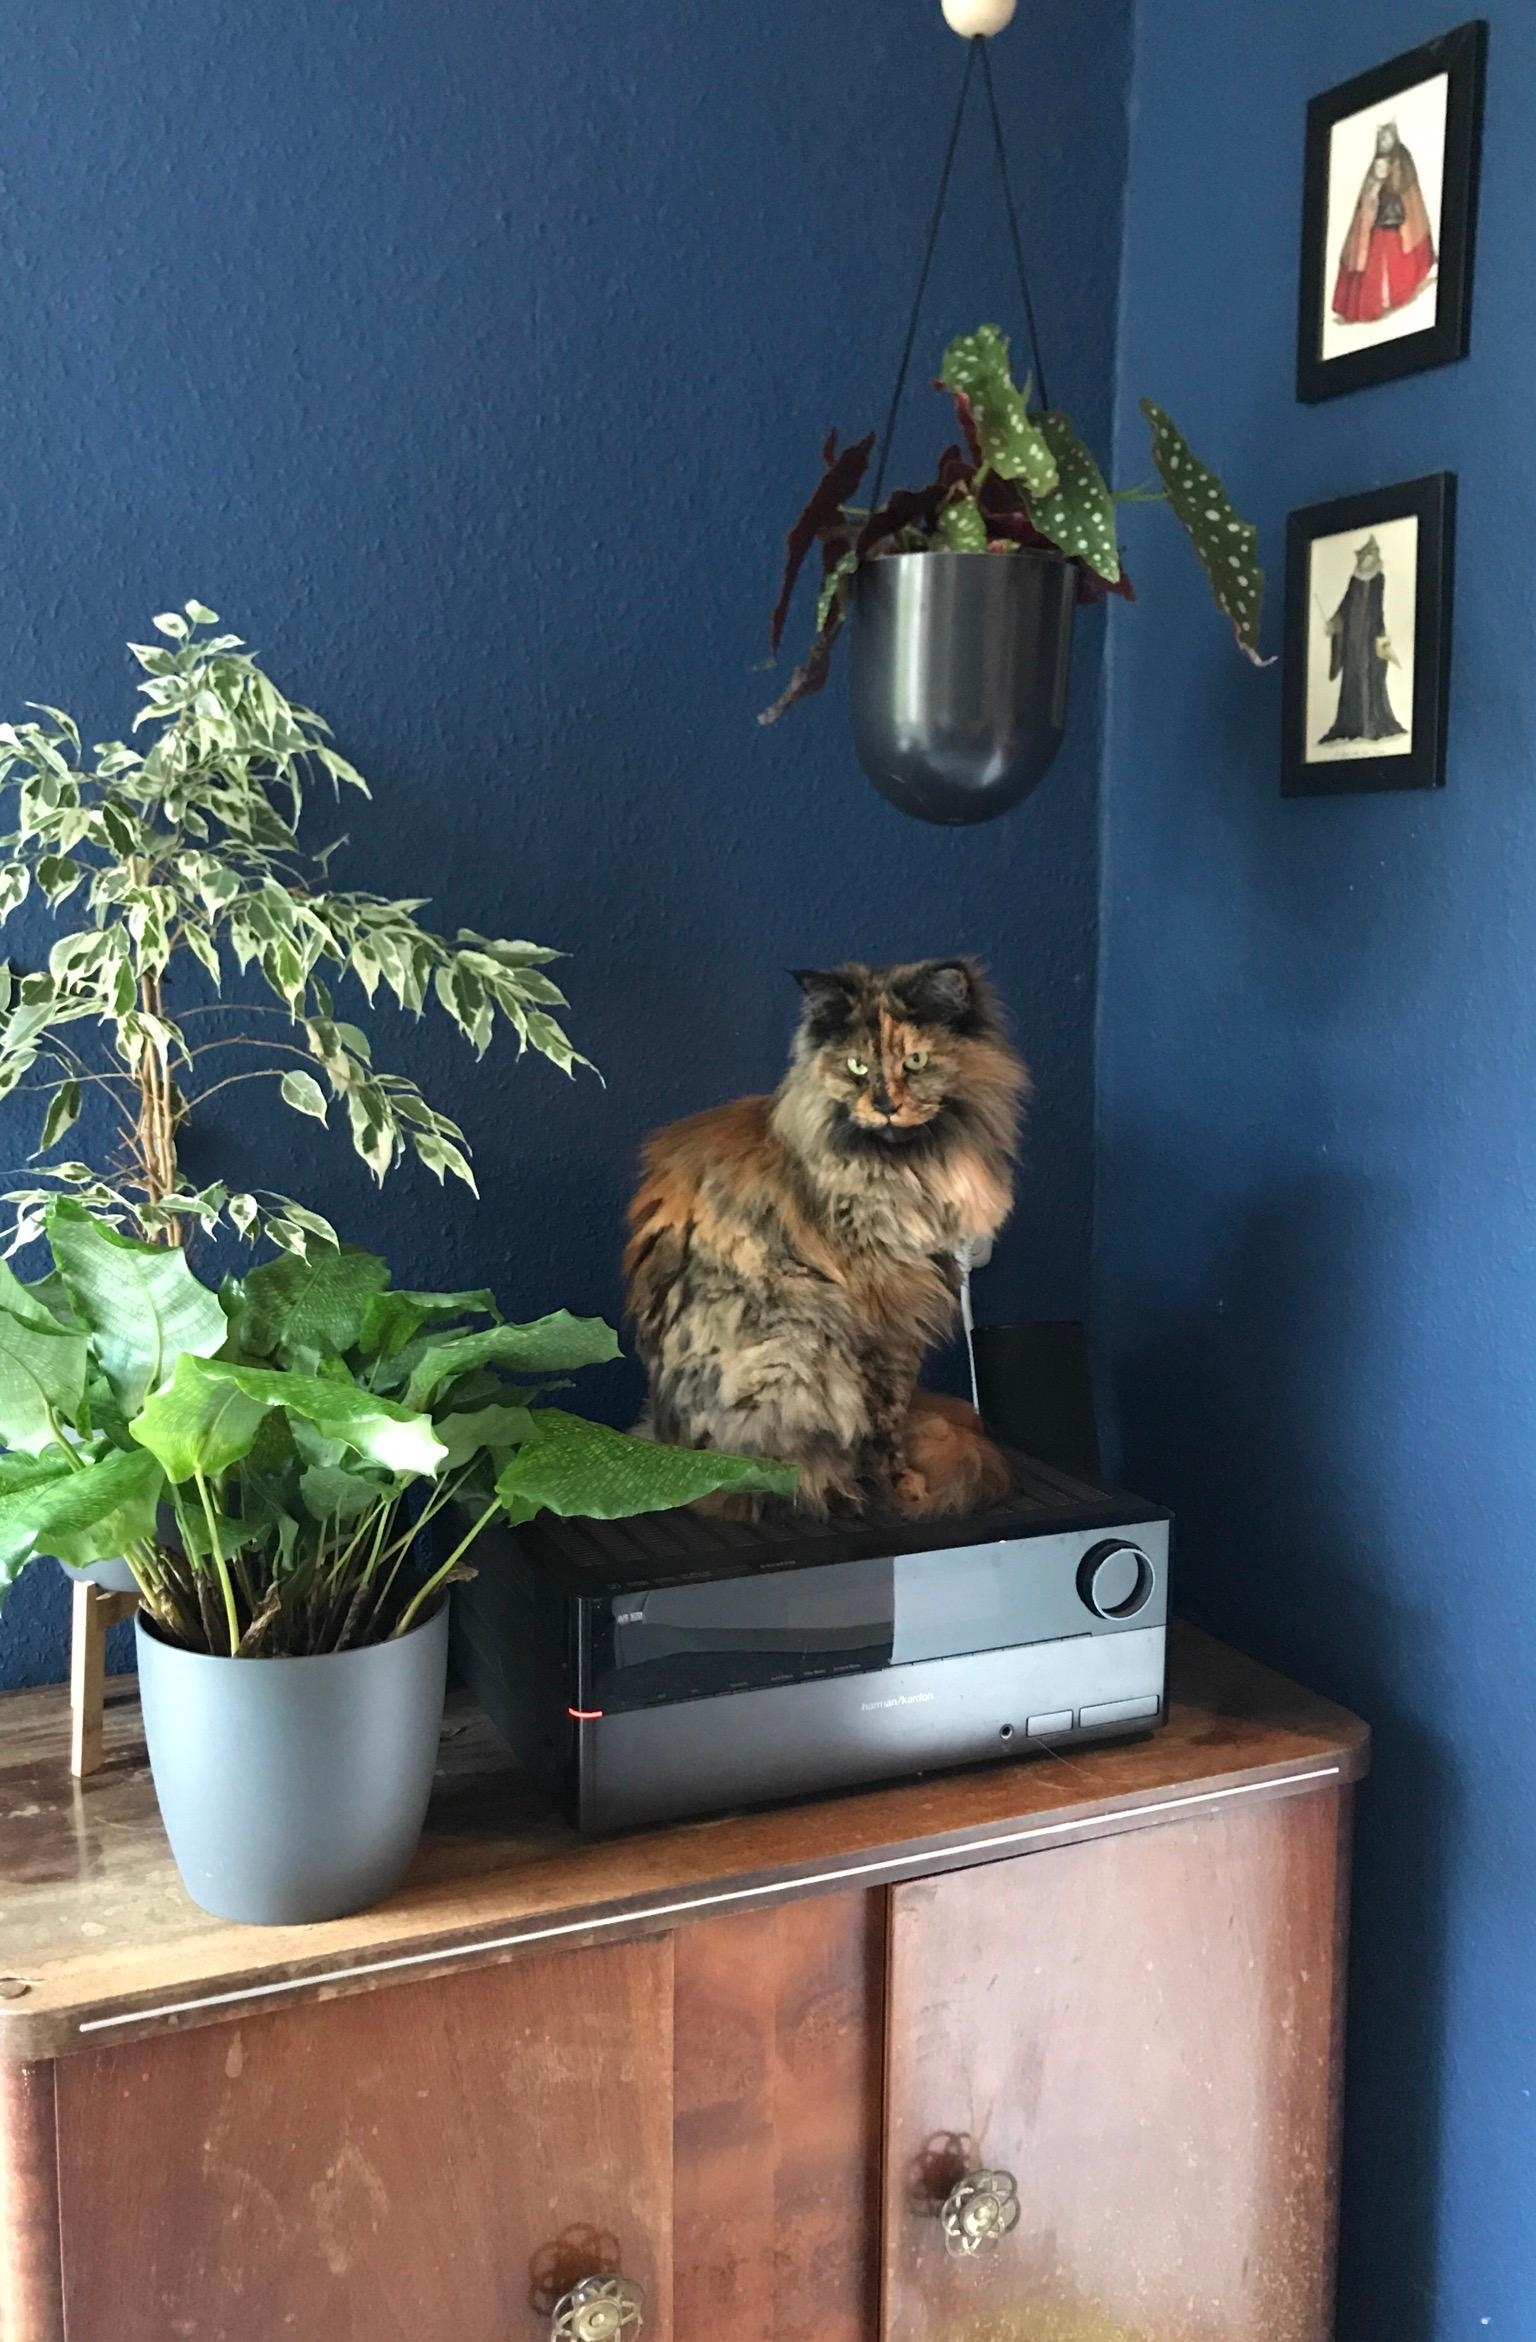 Home is where your cat is and your plants  cats kueche vintage plantgang urbanjungle  24554e27 95ea 4e1a 8d7d 2f10fcdb1452